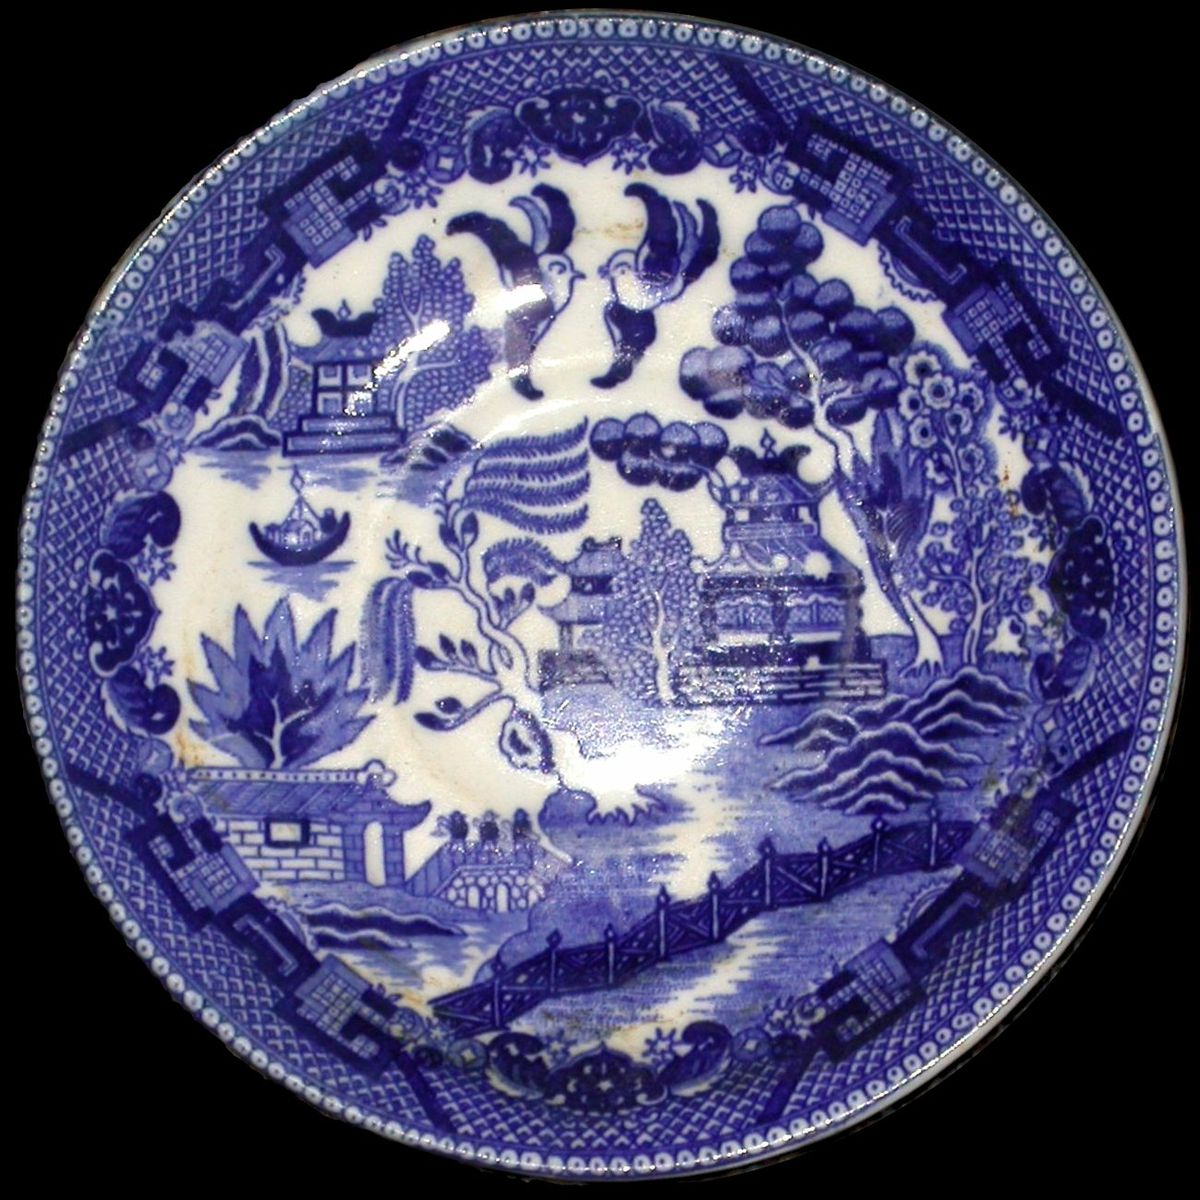 sc 1 st  Wikipedia & Willow pattern - Wikipedia